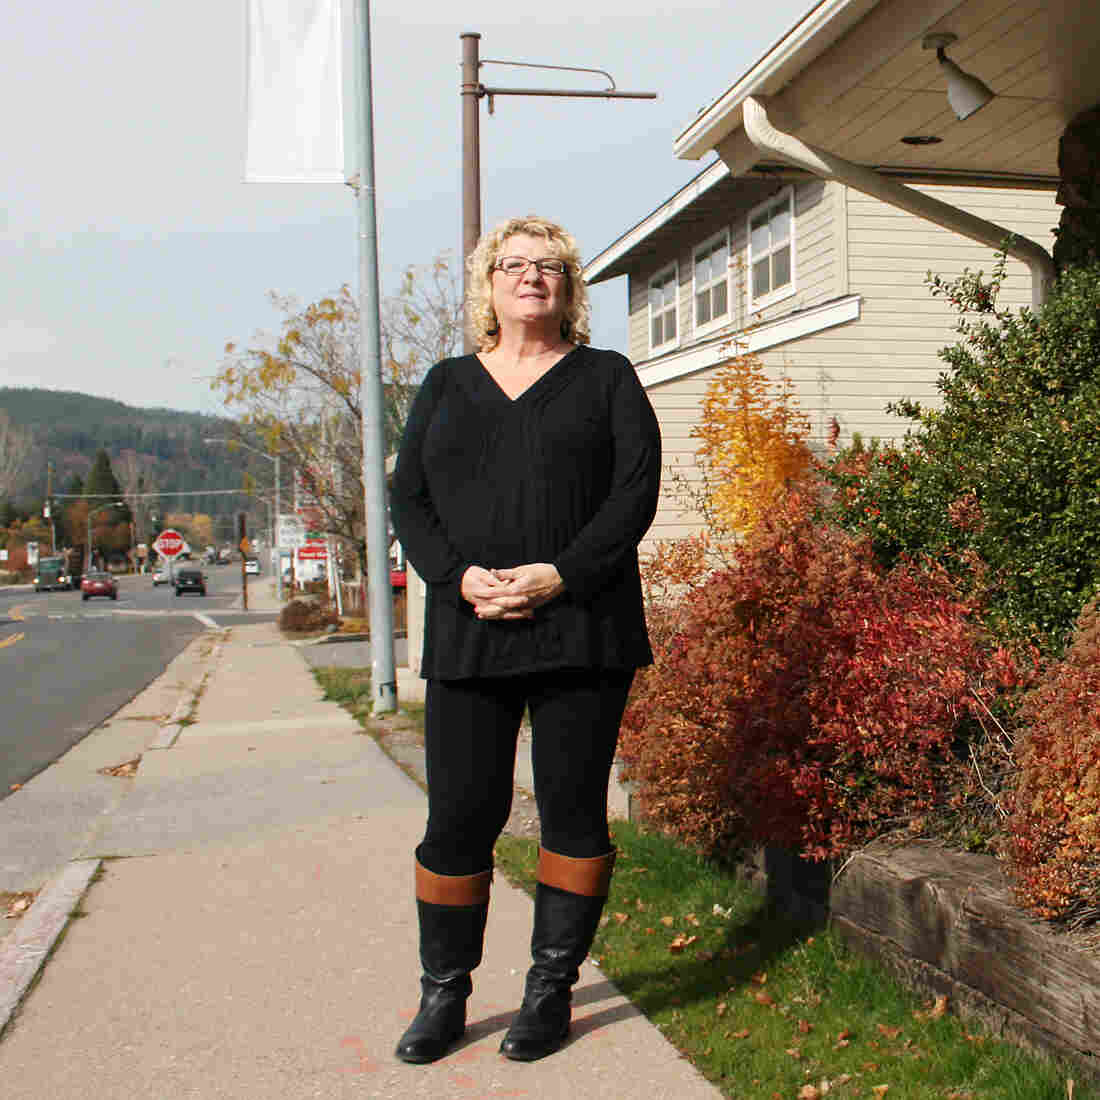 Lori Lomas, an insurance agent with Feather Financial in Quincy, Calif., has noticed that her clients in San Francisco have many more health carrier options than her mountain neighbors.